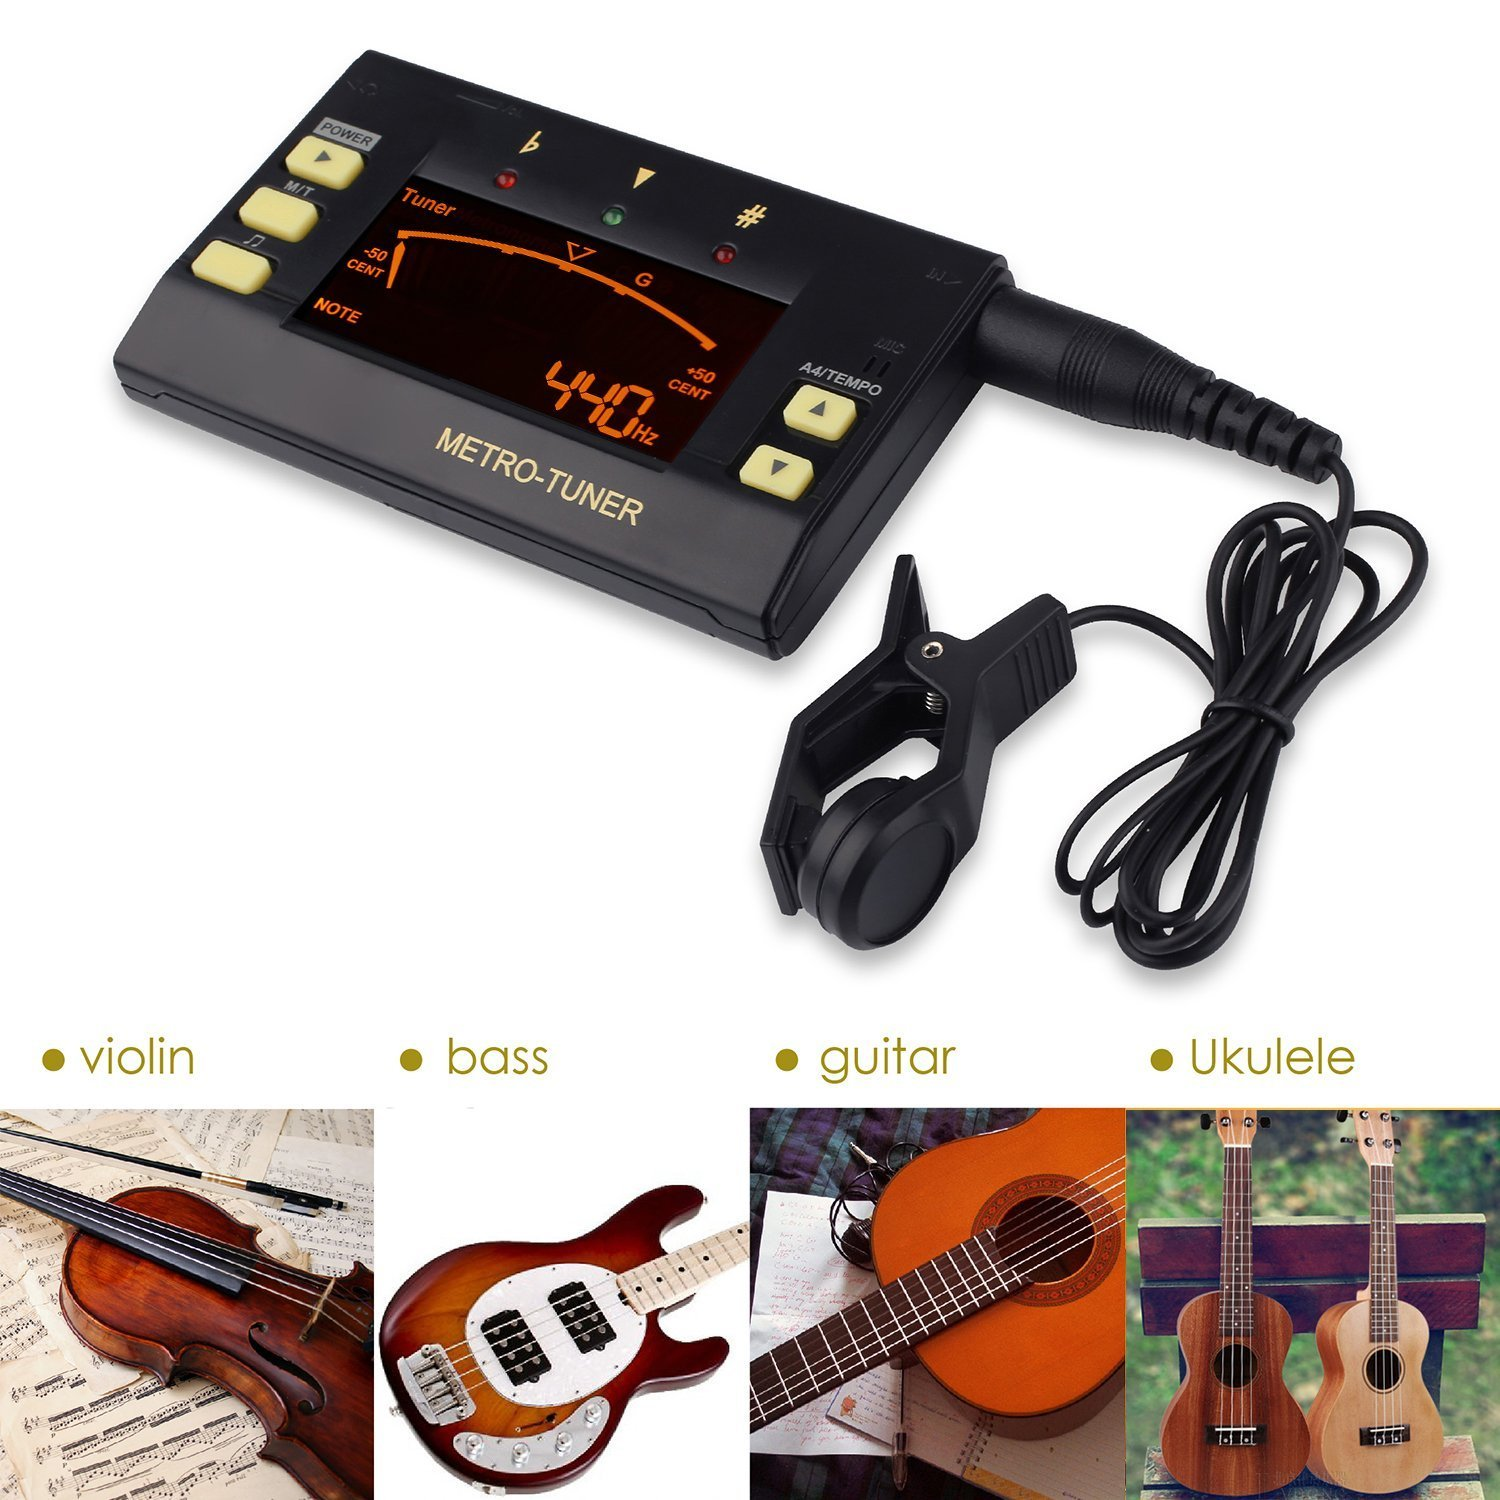 Mugig Metronome, Digital Tuner, Tone Generator 3 in 1 Multi-Instrument Device for Guitar, Bass, Violin, Ukulele, Chromatic Tuning, Large LCD Display, 8 Rhythms 30-250 BPM, Pickup & Battery Included